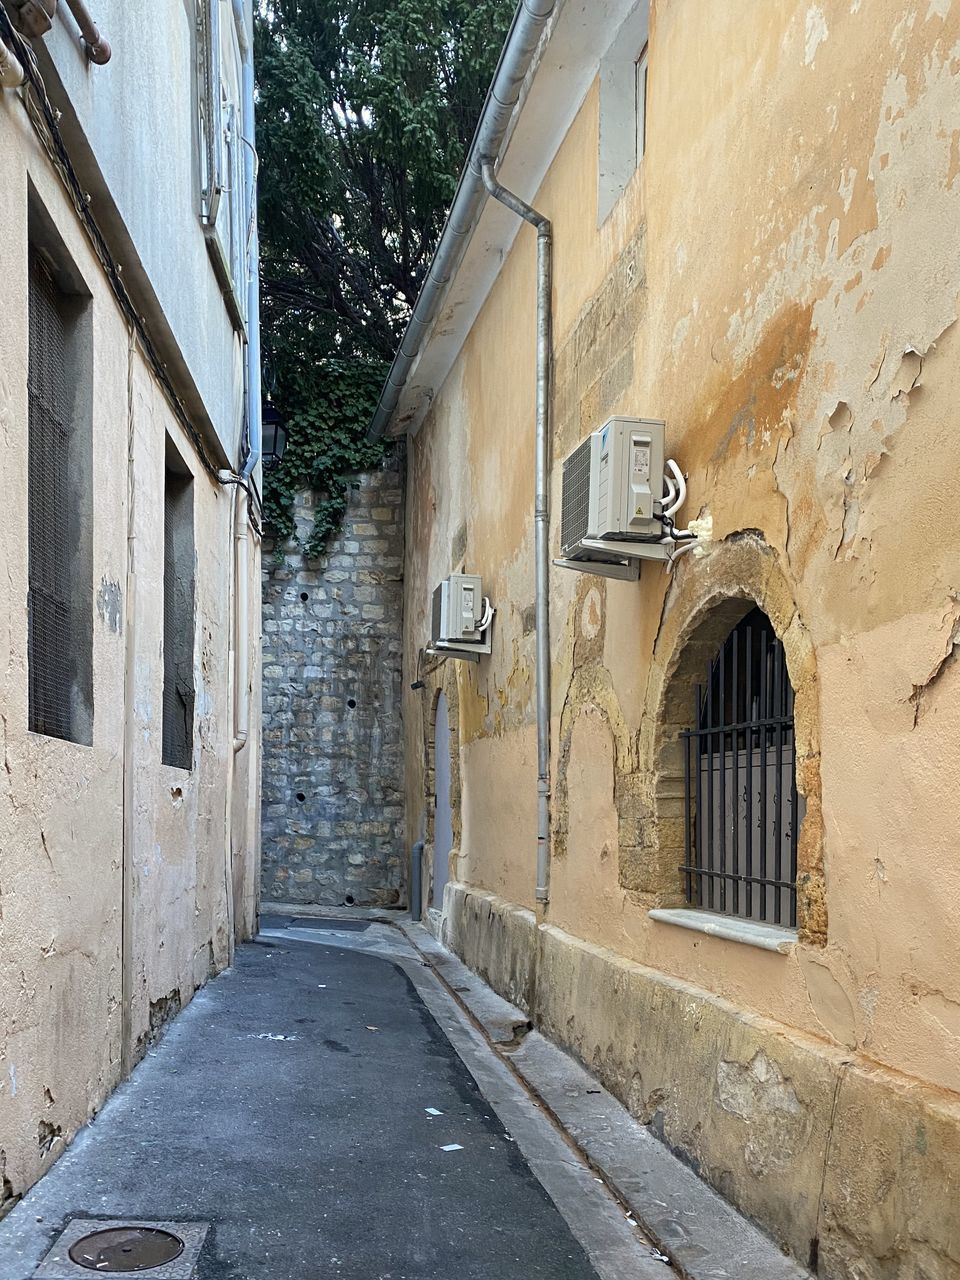 architecture, built structure, building exterior, building, window, no people, the way forward, direction, city, day, wall - building feature, street, residential district, old, footpath, house, outdoors, road, alley, door